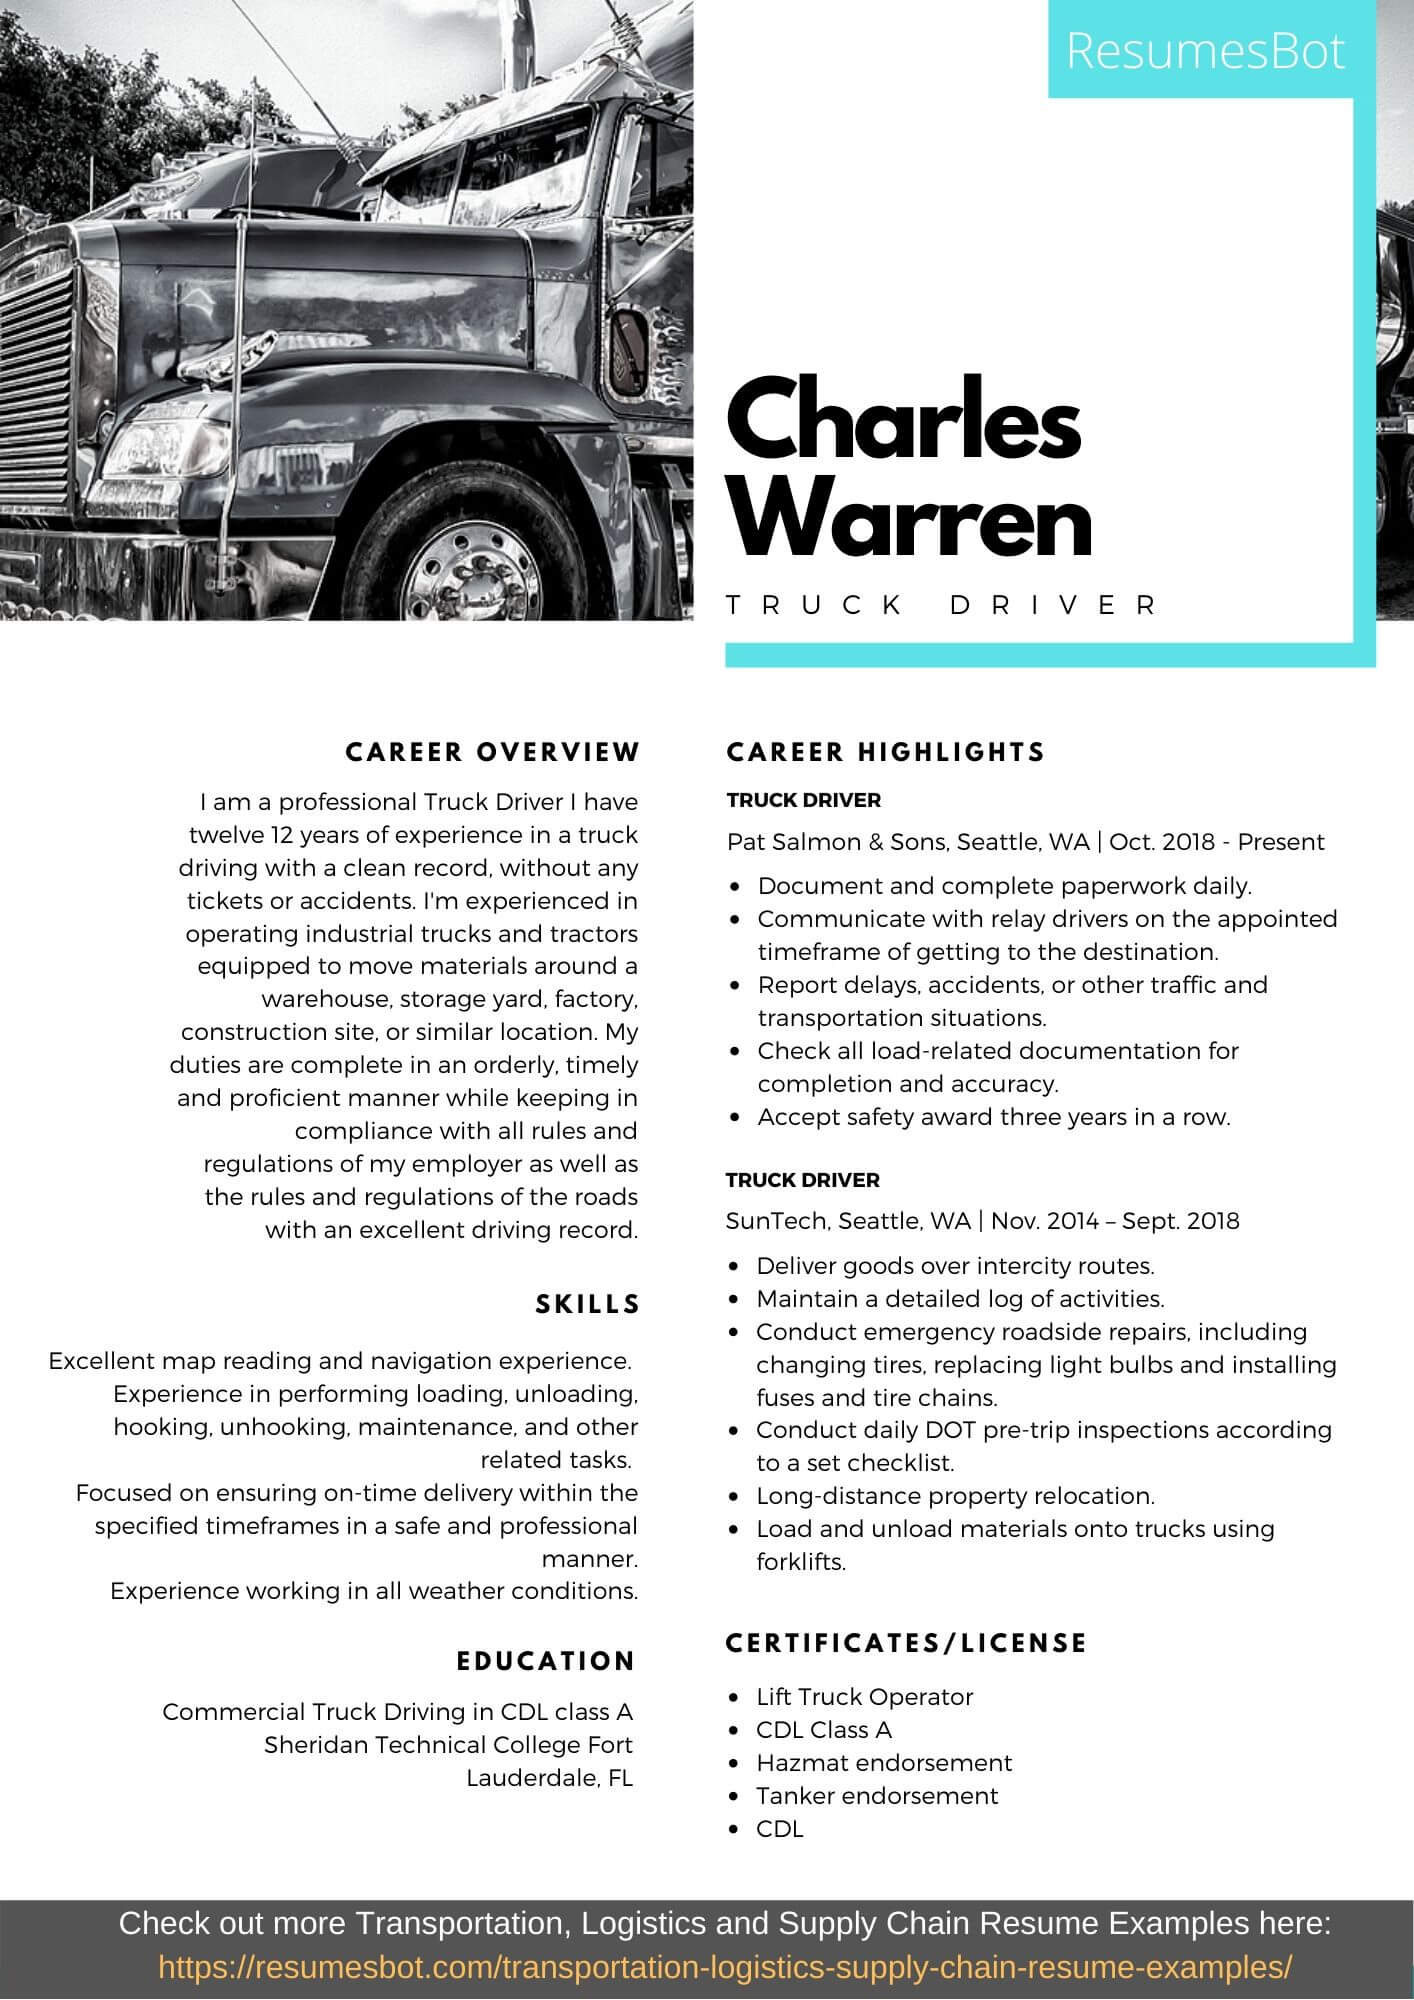 truck driver resume samples and tips pdf resumes bot best example civil engineering Resume Best Truck Driver Resume